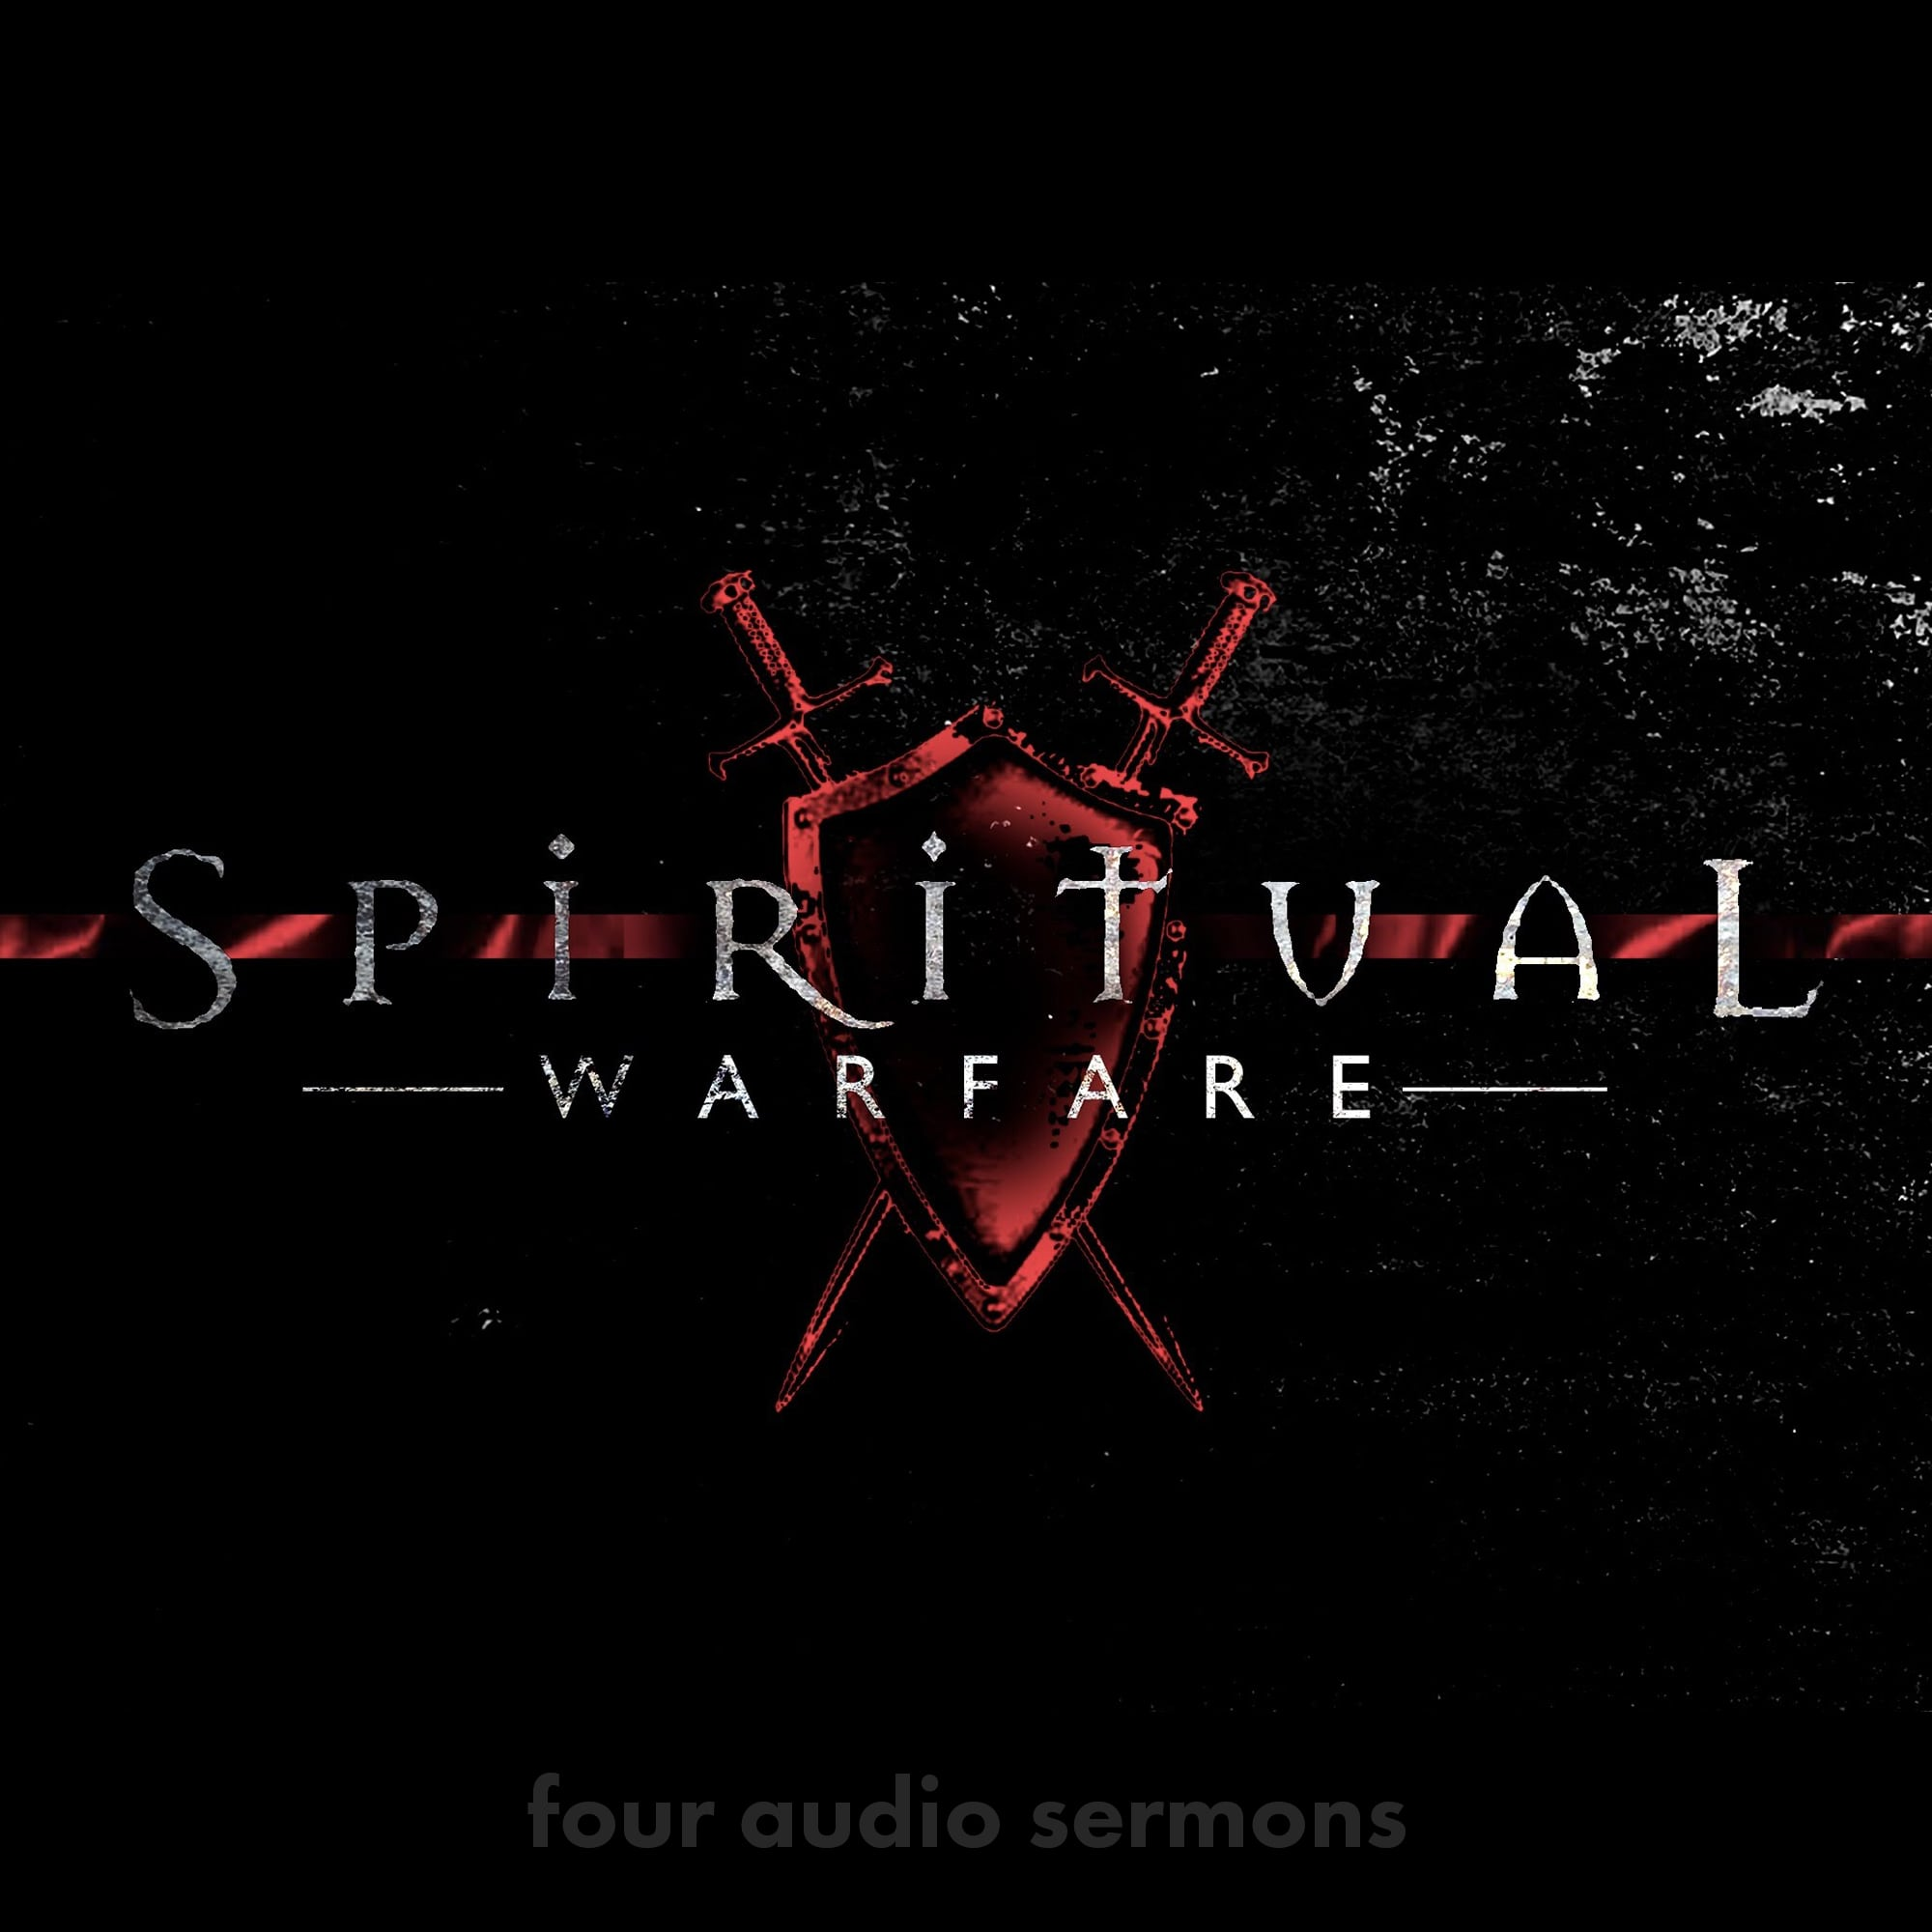 Series: Spiritual Warfare